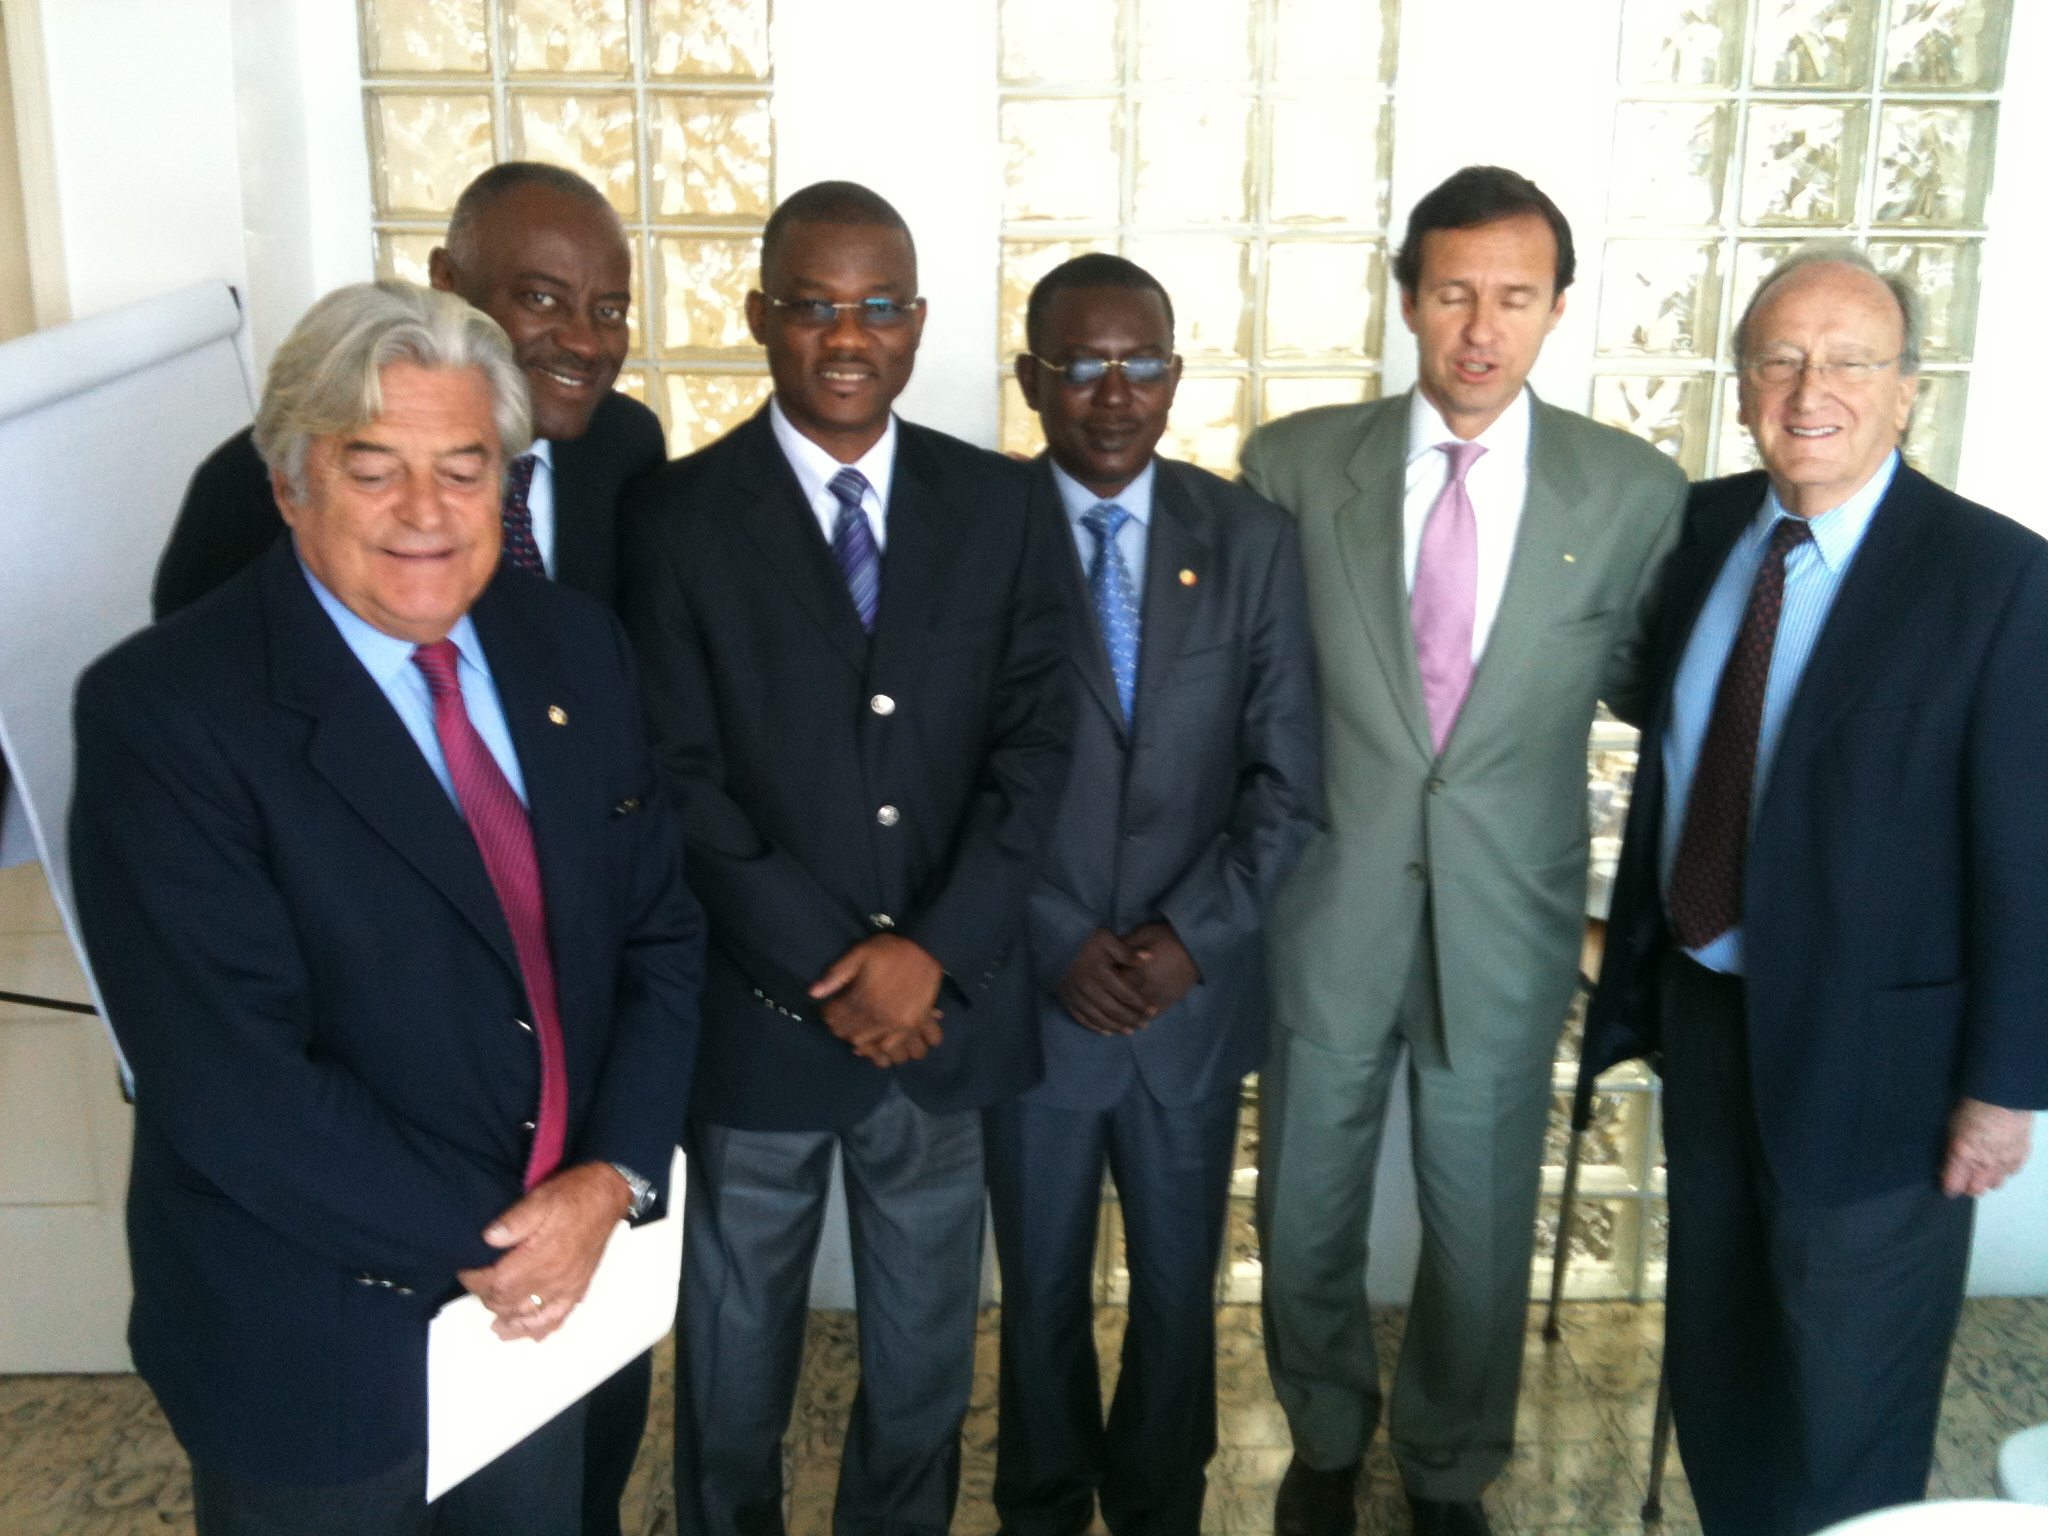 Club de Madrid supports the normal transference of power in Haiti